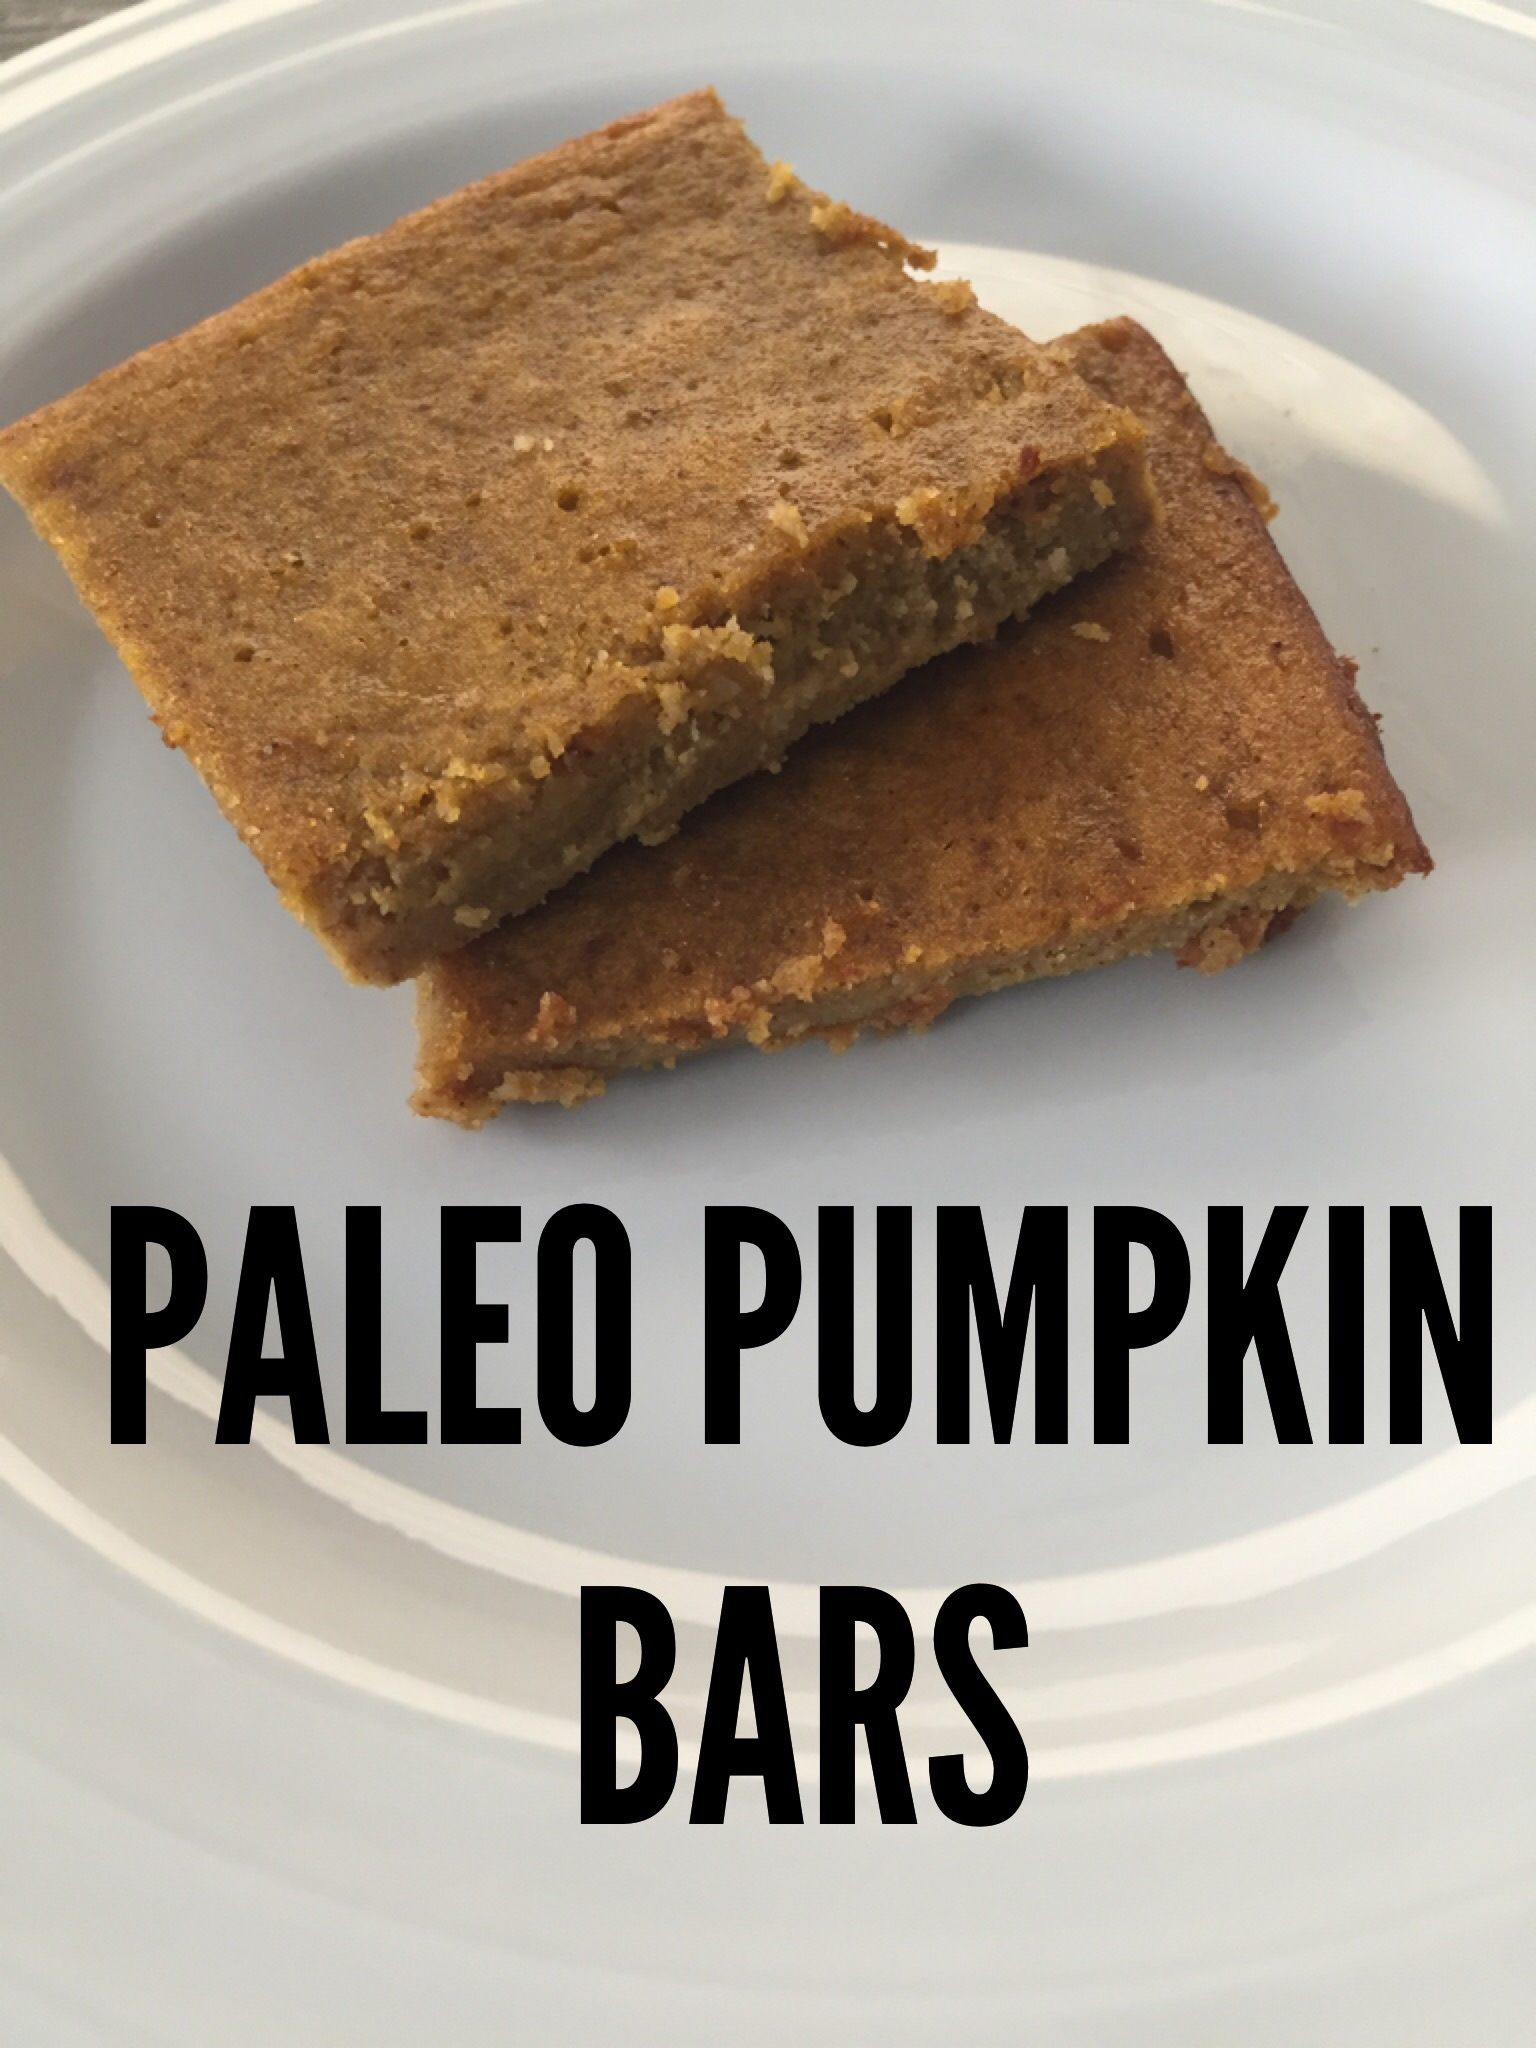 Paleo Pumpkin Bars Recipe - Fit and Awesome